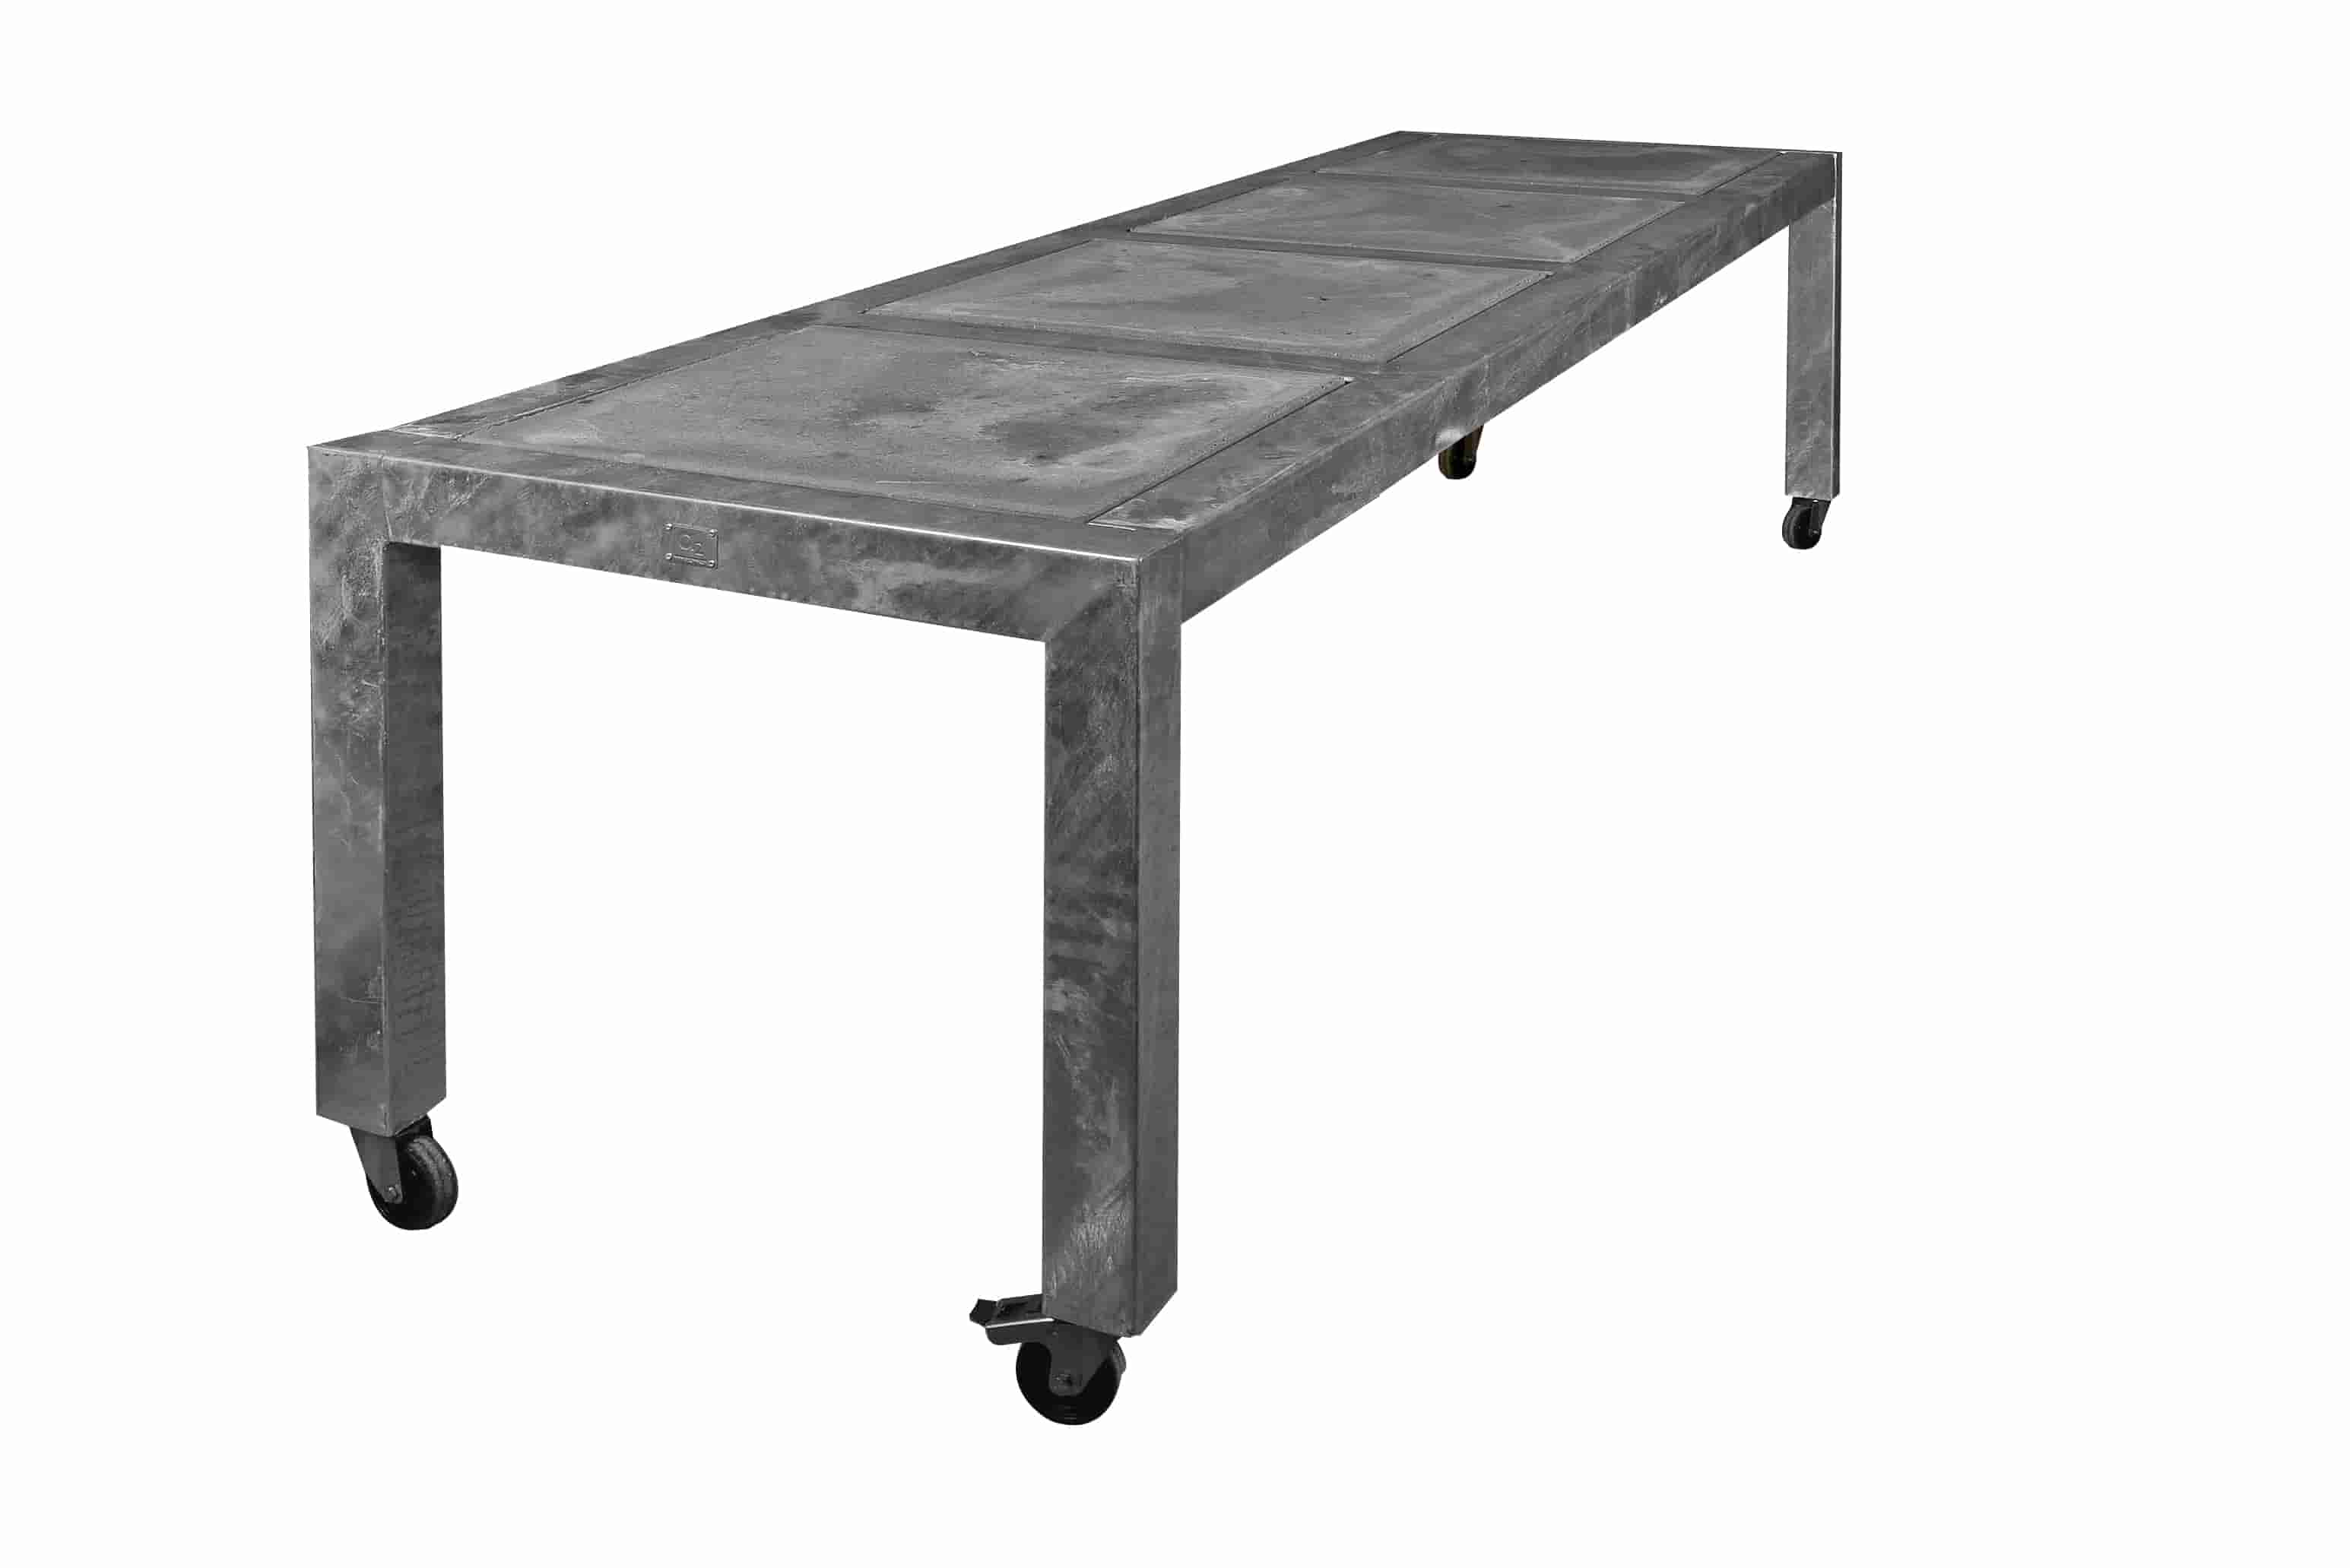 Image of A2 LIVING Longtable havebord - galvaniserede, med hjul (284x77)